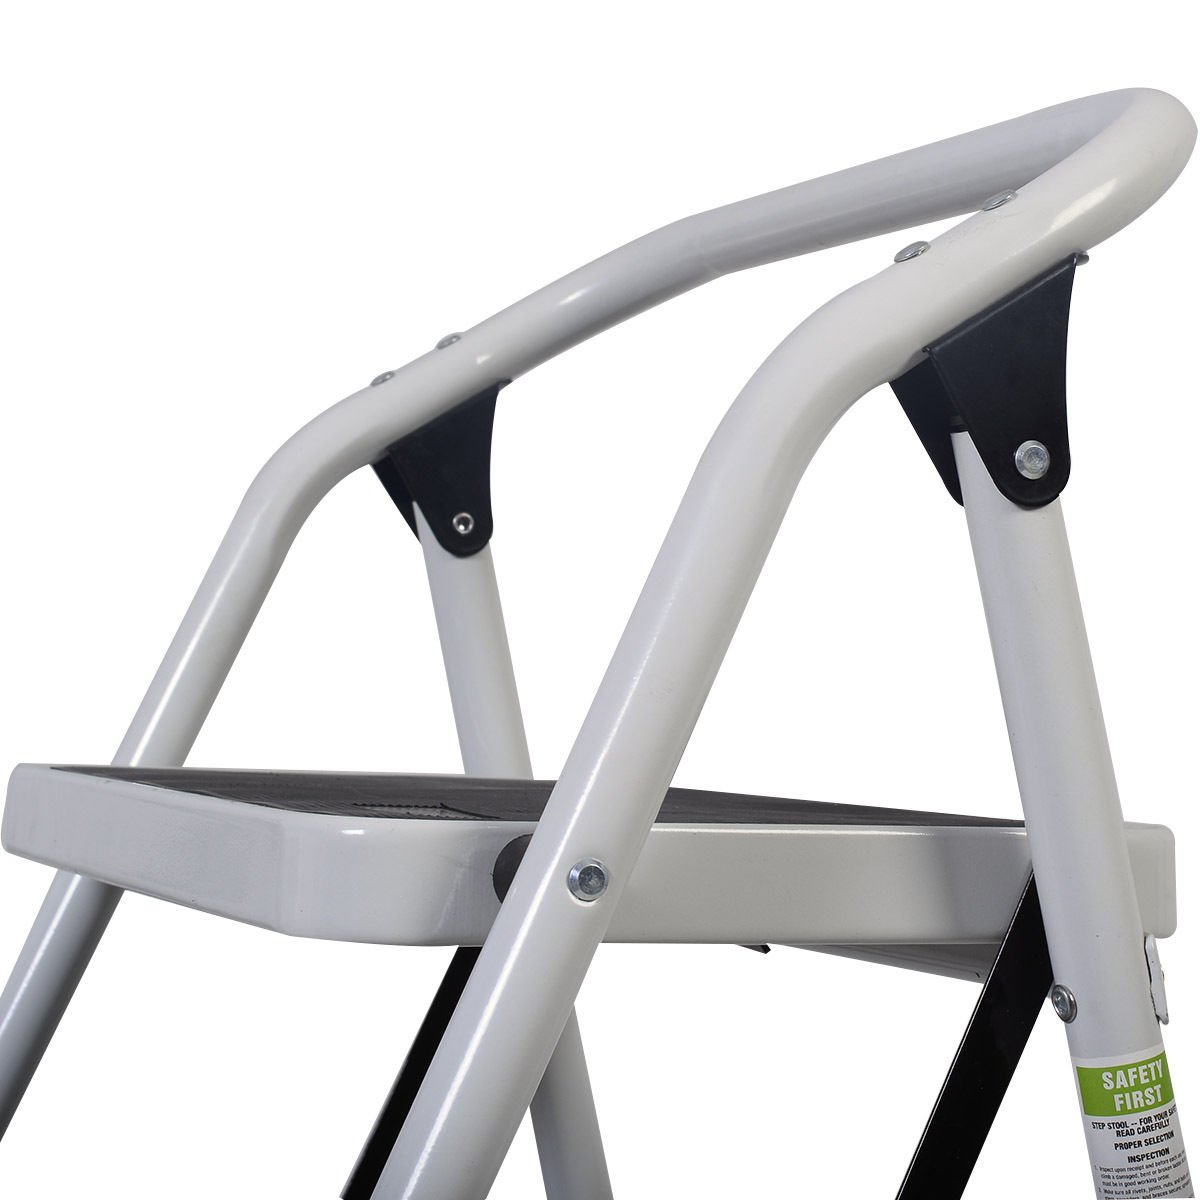 Z ZTDM Portable 3 Step Ladder with 330lbs Capacity Platform Father's Day Gift Lightweight Short Handrail Iron Folding Stool by Z ZTDM (Image #5)